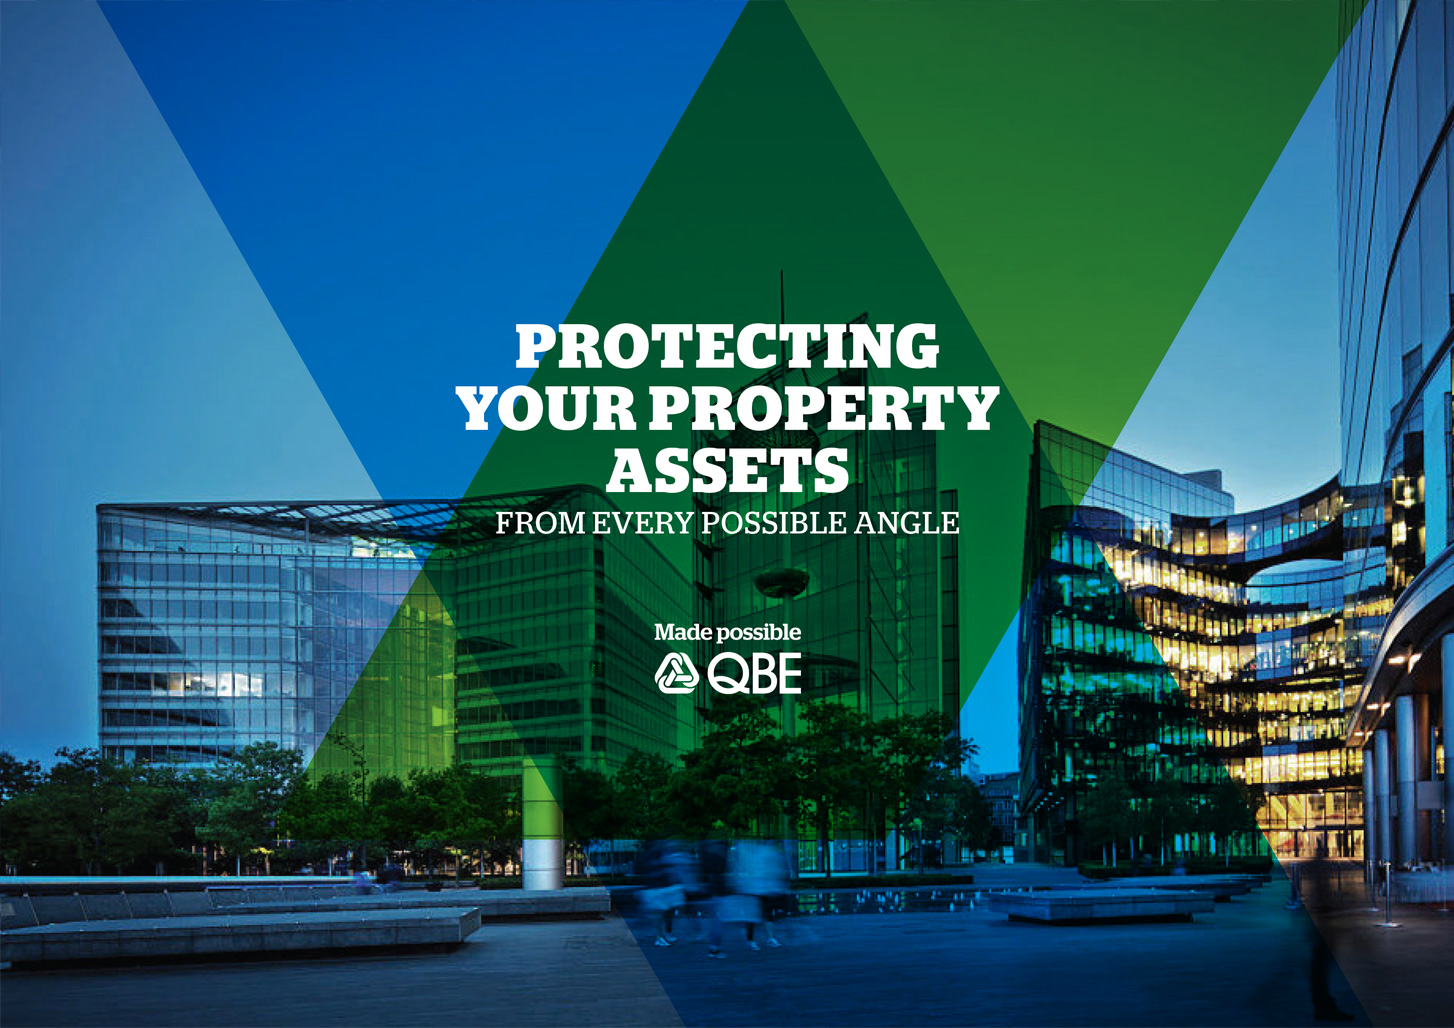 Protecting your property assets